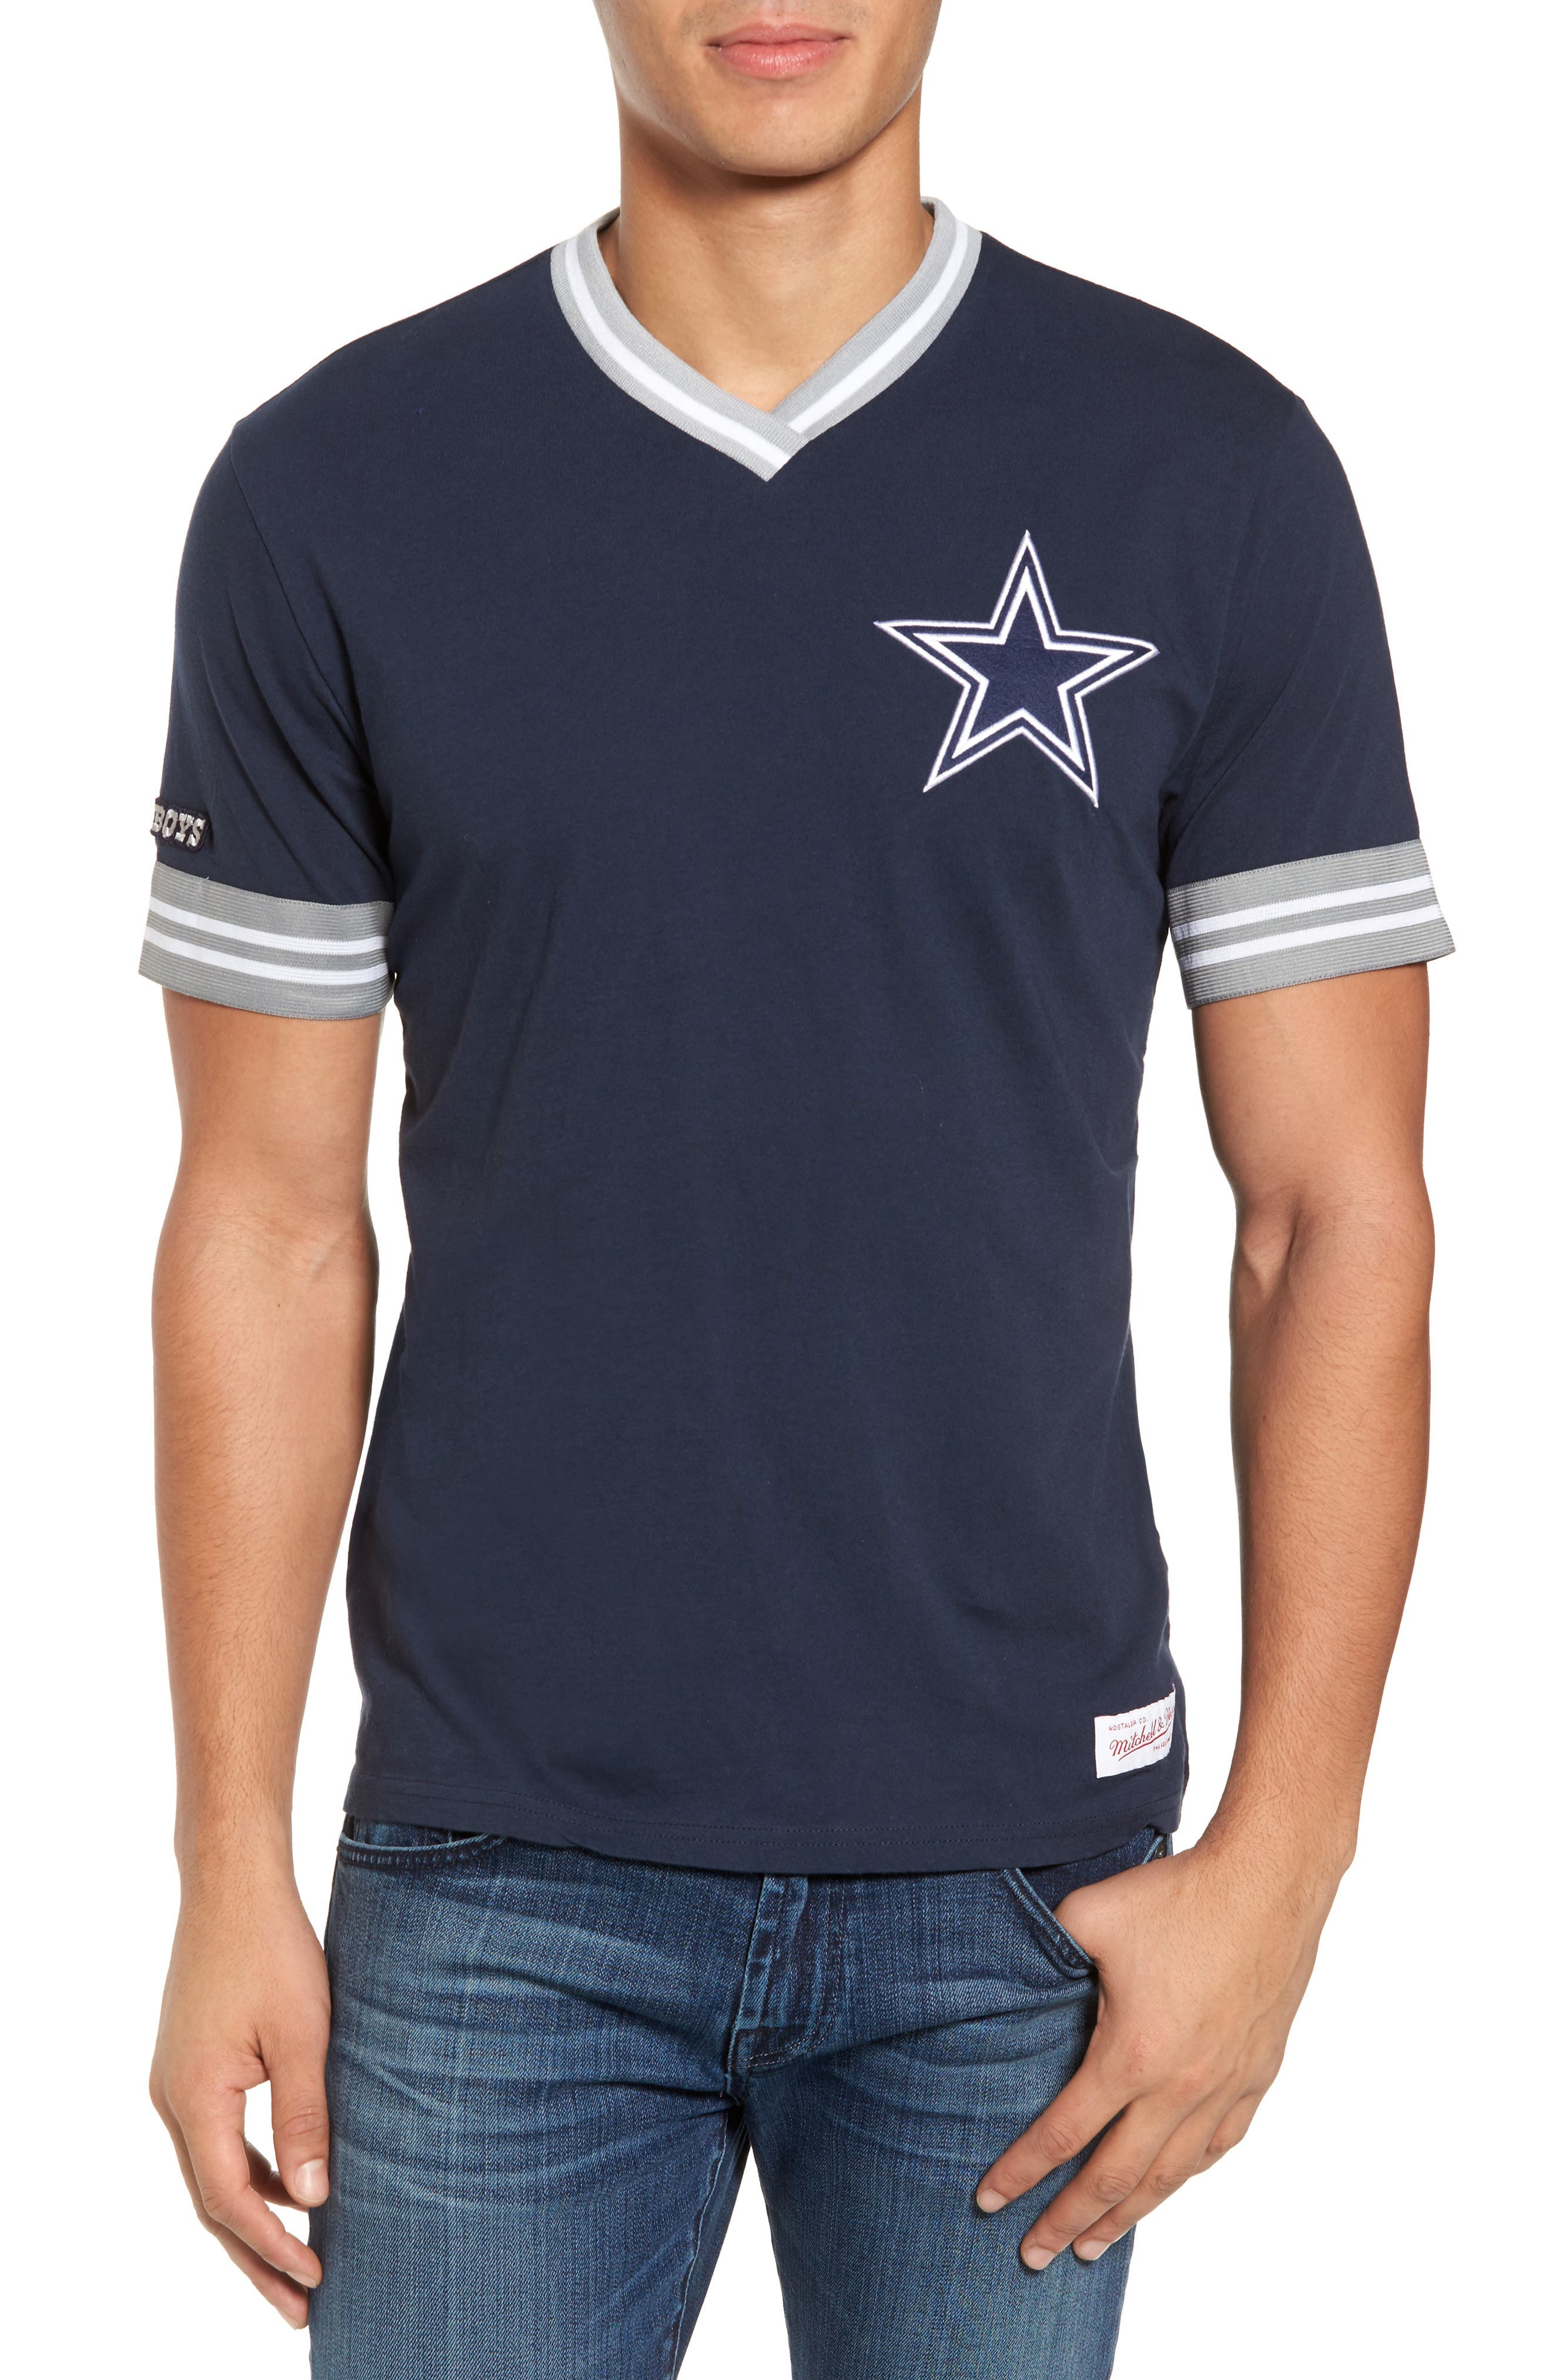 Mitchell & Ness NFL Cowboys T-Shirt